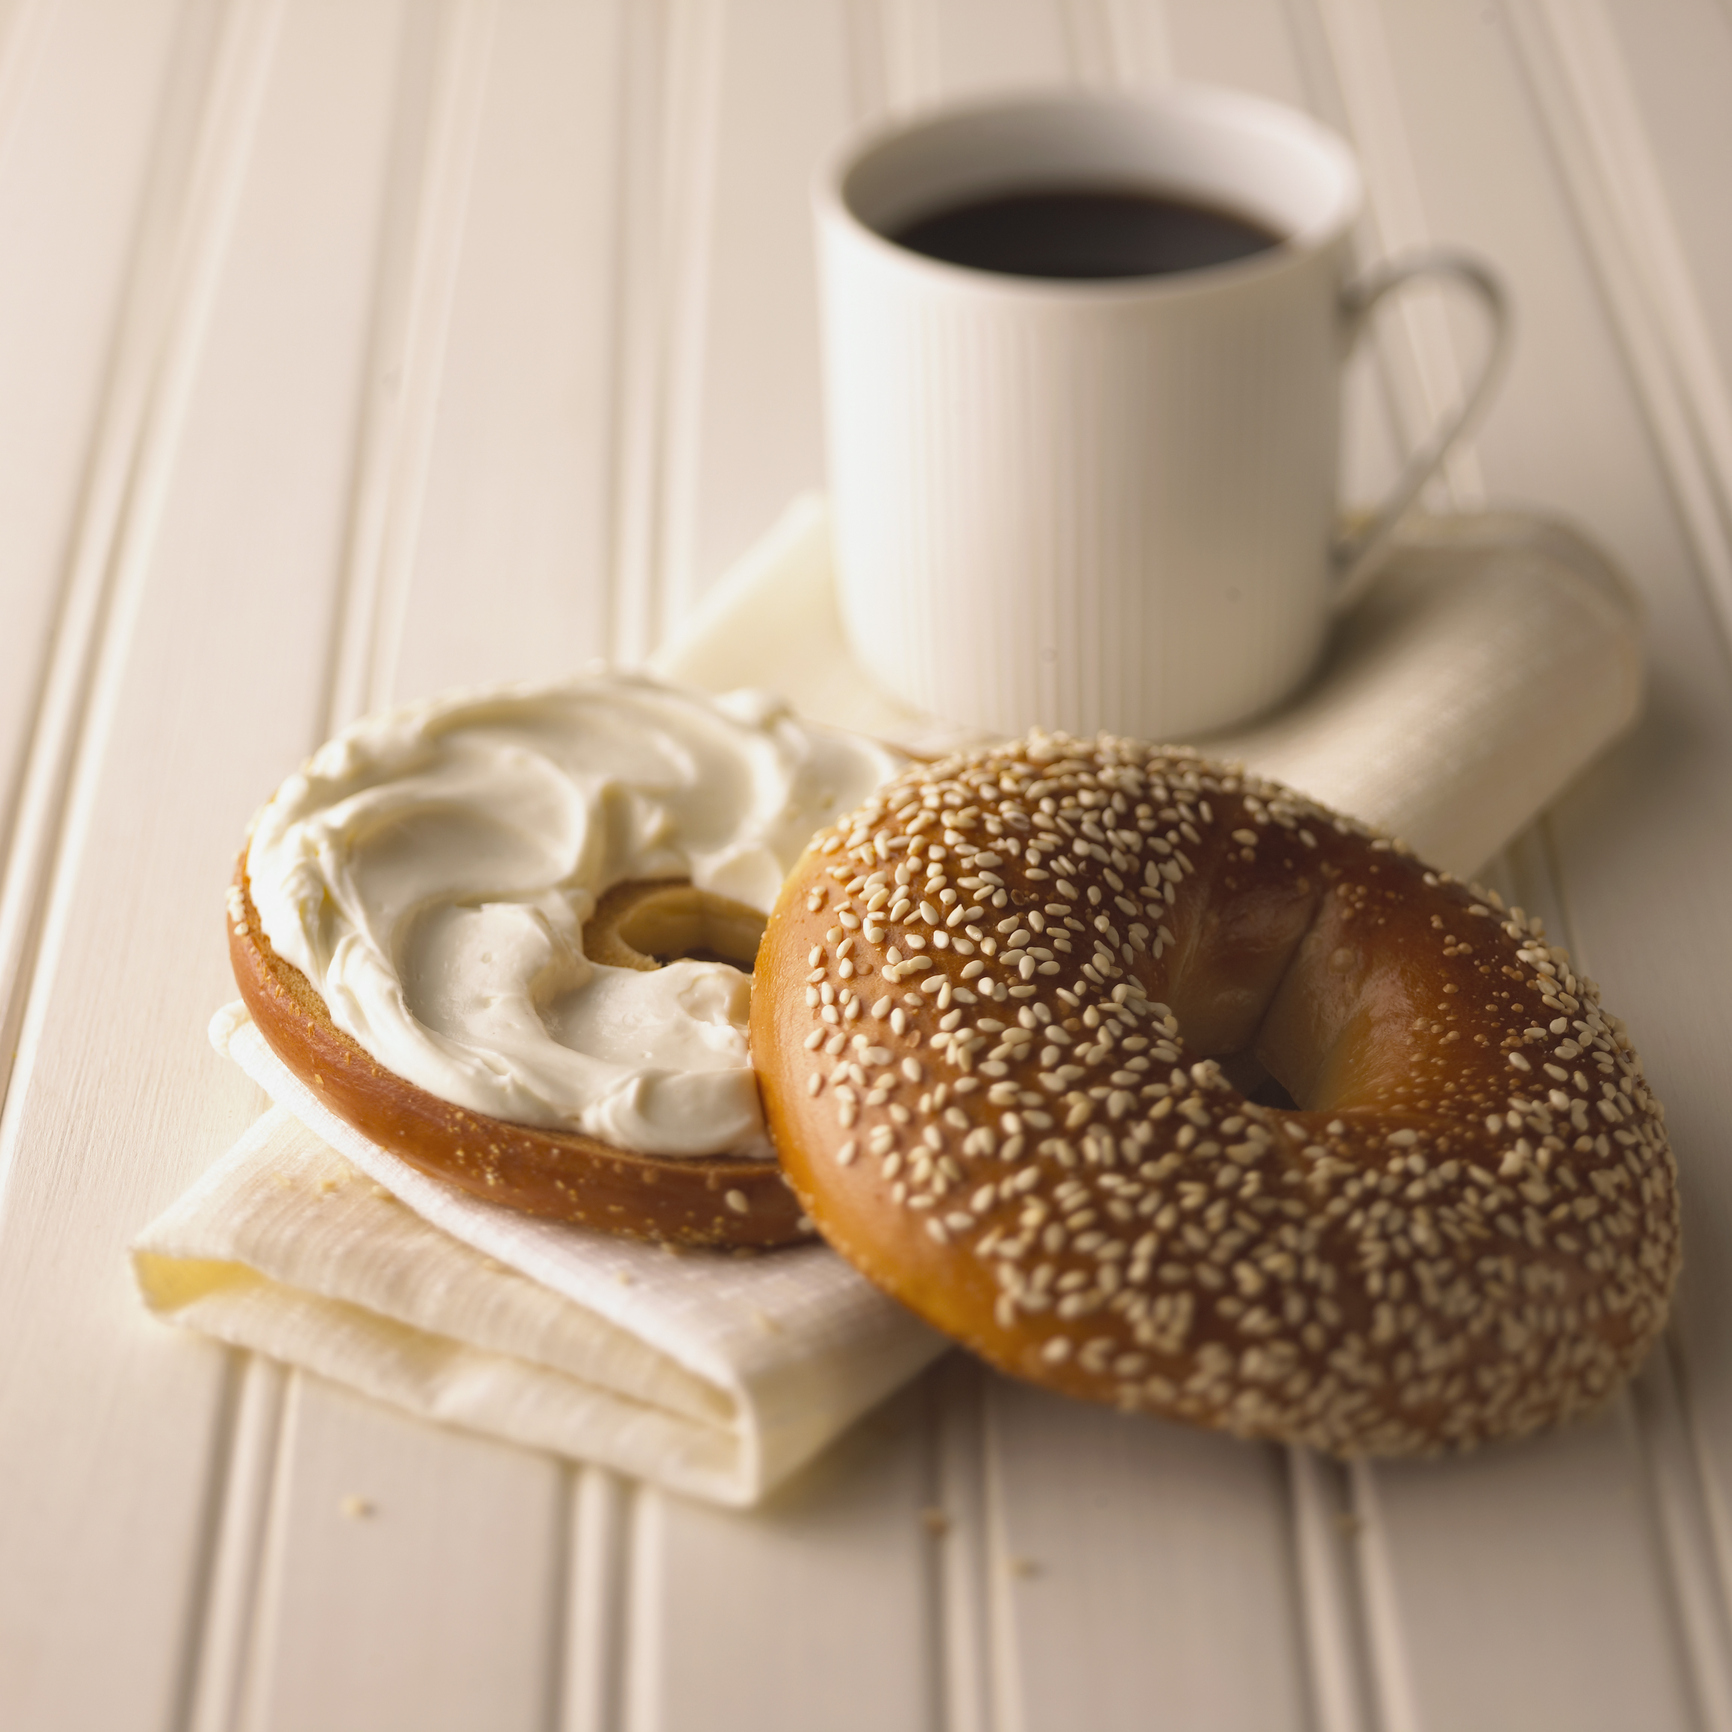 Coffee and bagels just got mashed up in the most wonderful and surprising way